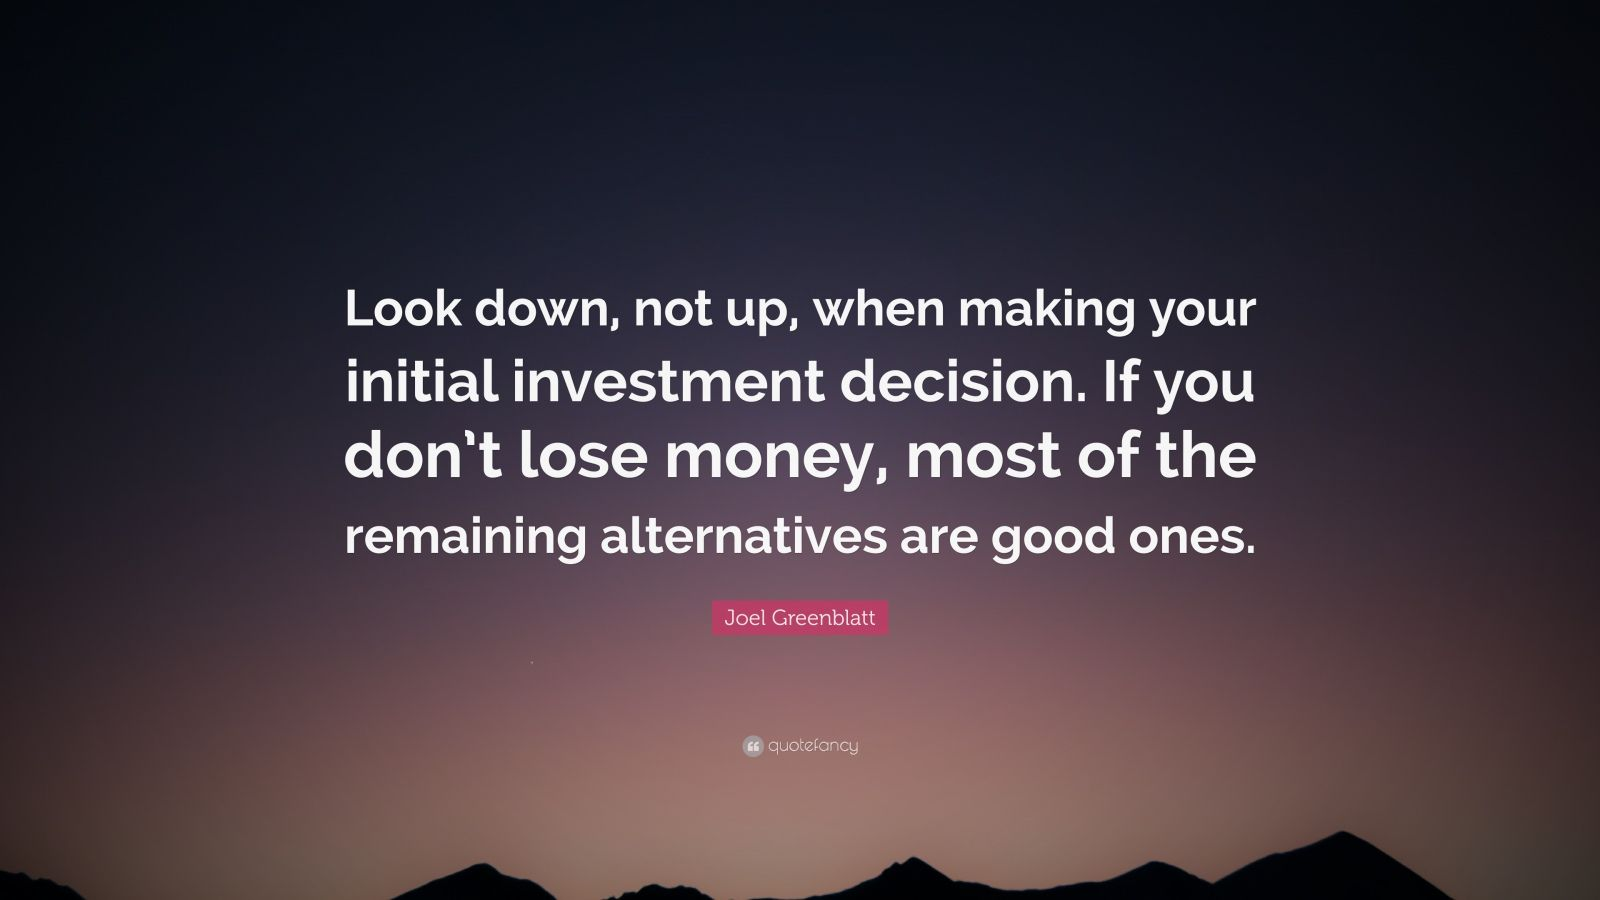 """Joel Greenblatt Quote: """"Look down, not up, when making your initial investment decision. If you don't lose money, most of the remaining alternatives are good ones."""""""